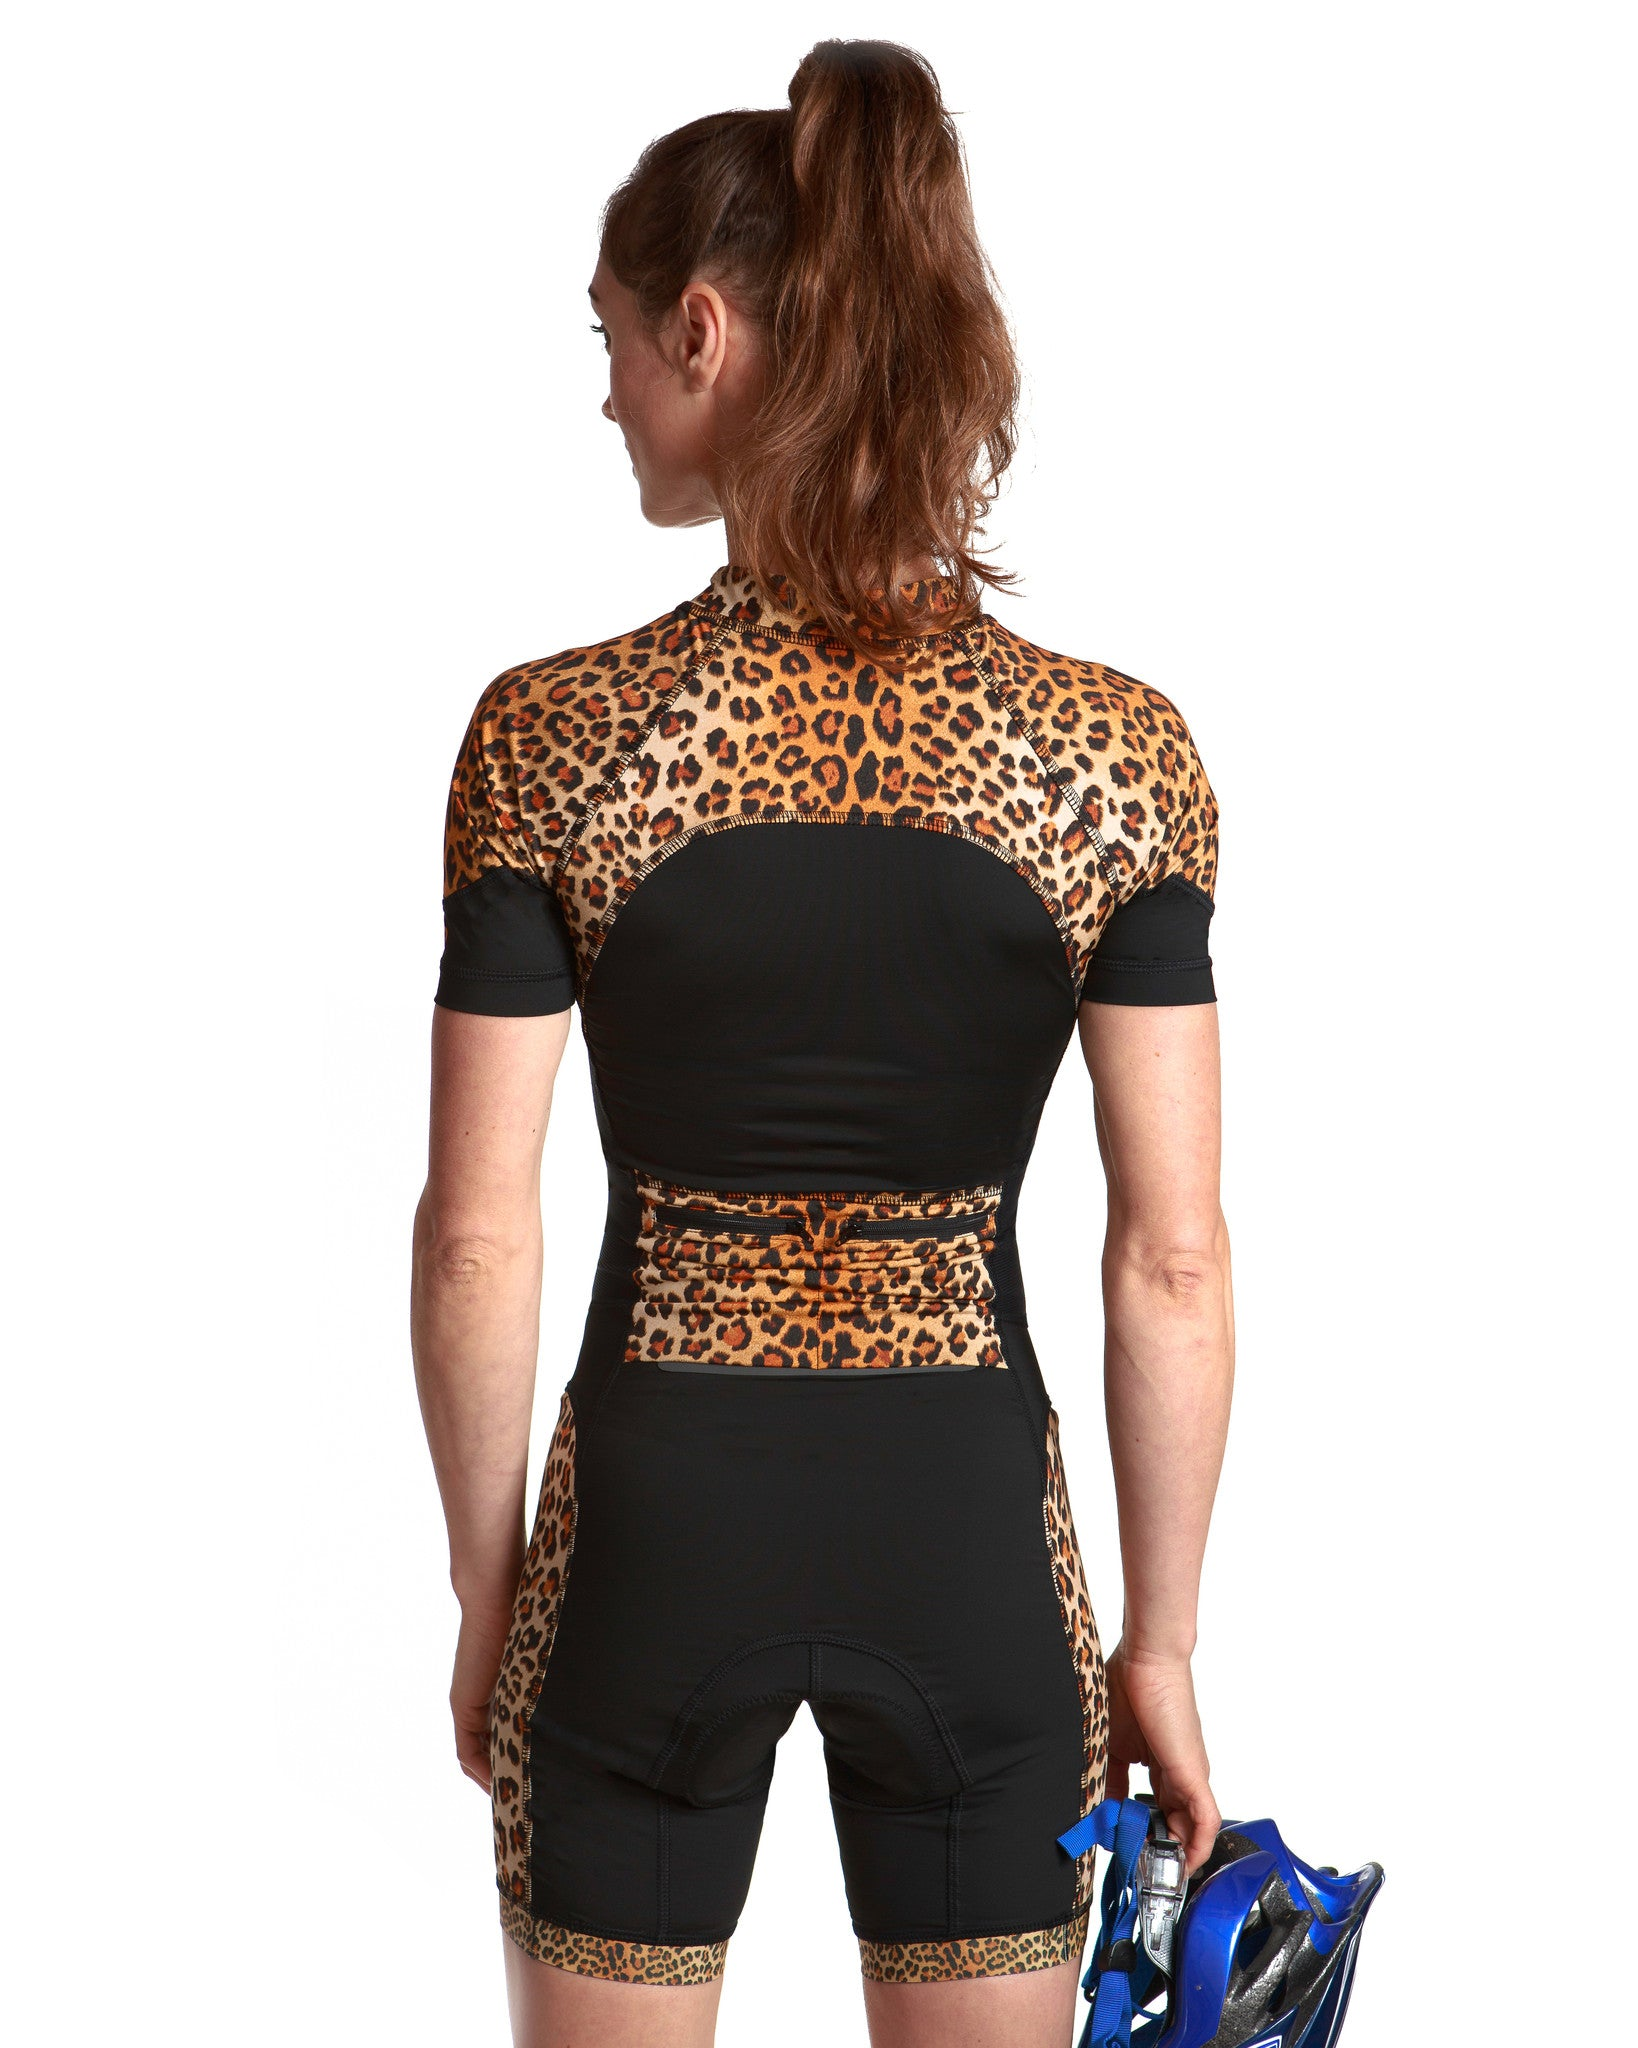 LPRD Black with Leopard Panel Cycling Skinsuit | Close-up Back View